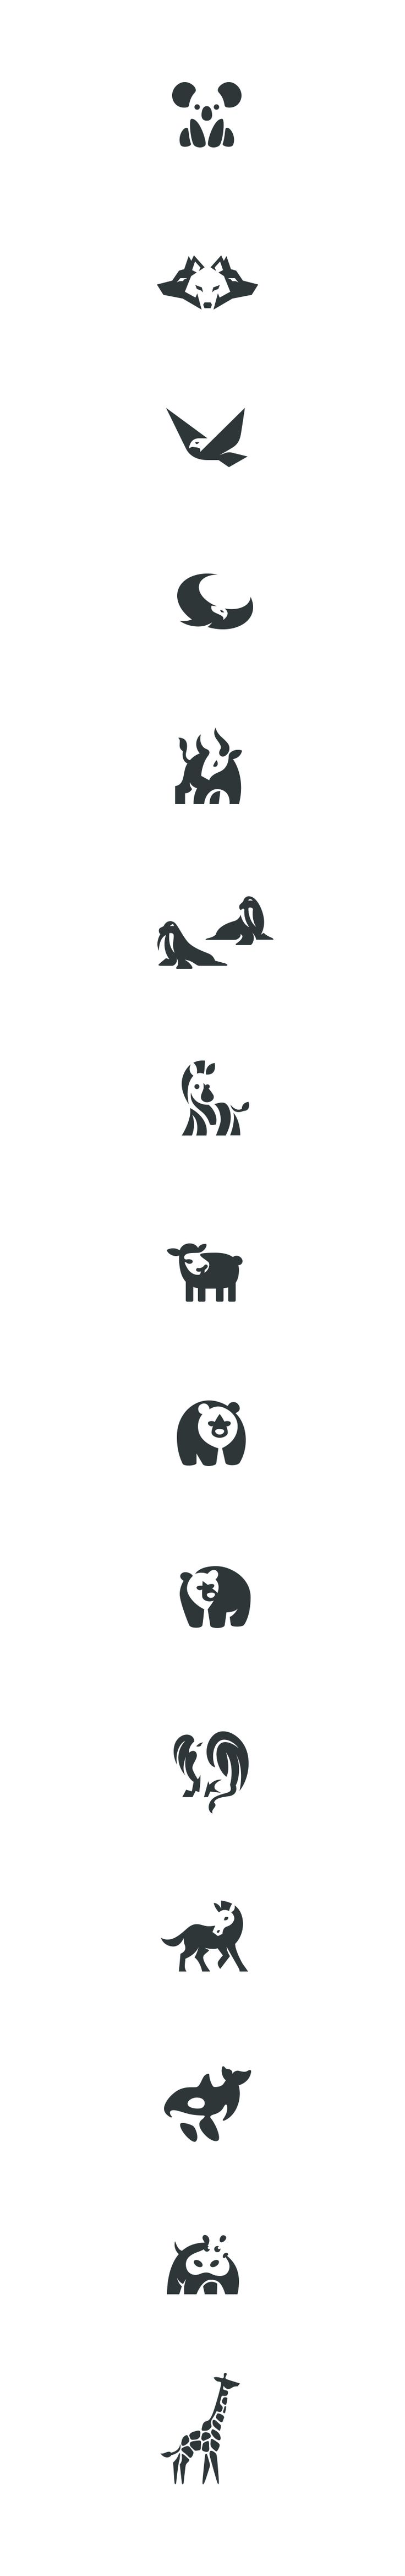 Negative space animals pt.3 #negative #space #logo #animals #marks #design #identity #brand #seap #koala #hippo #bull #griffin #wolf #bear #horse #pony  #giraffe #eagle #illustration #kreatank #whale #orca